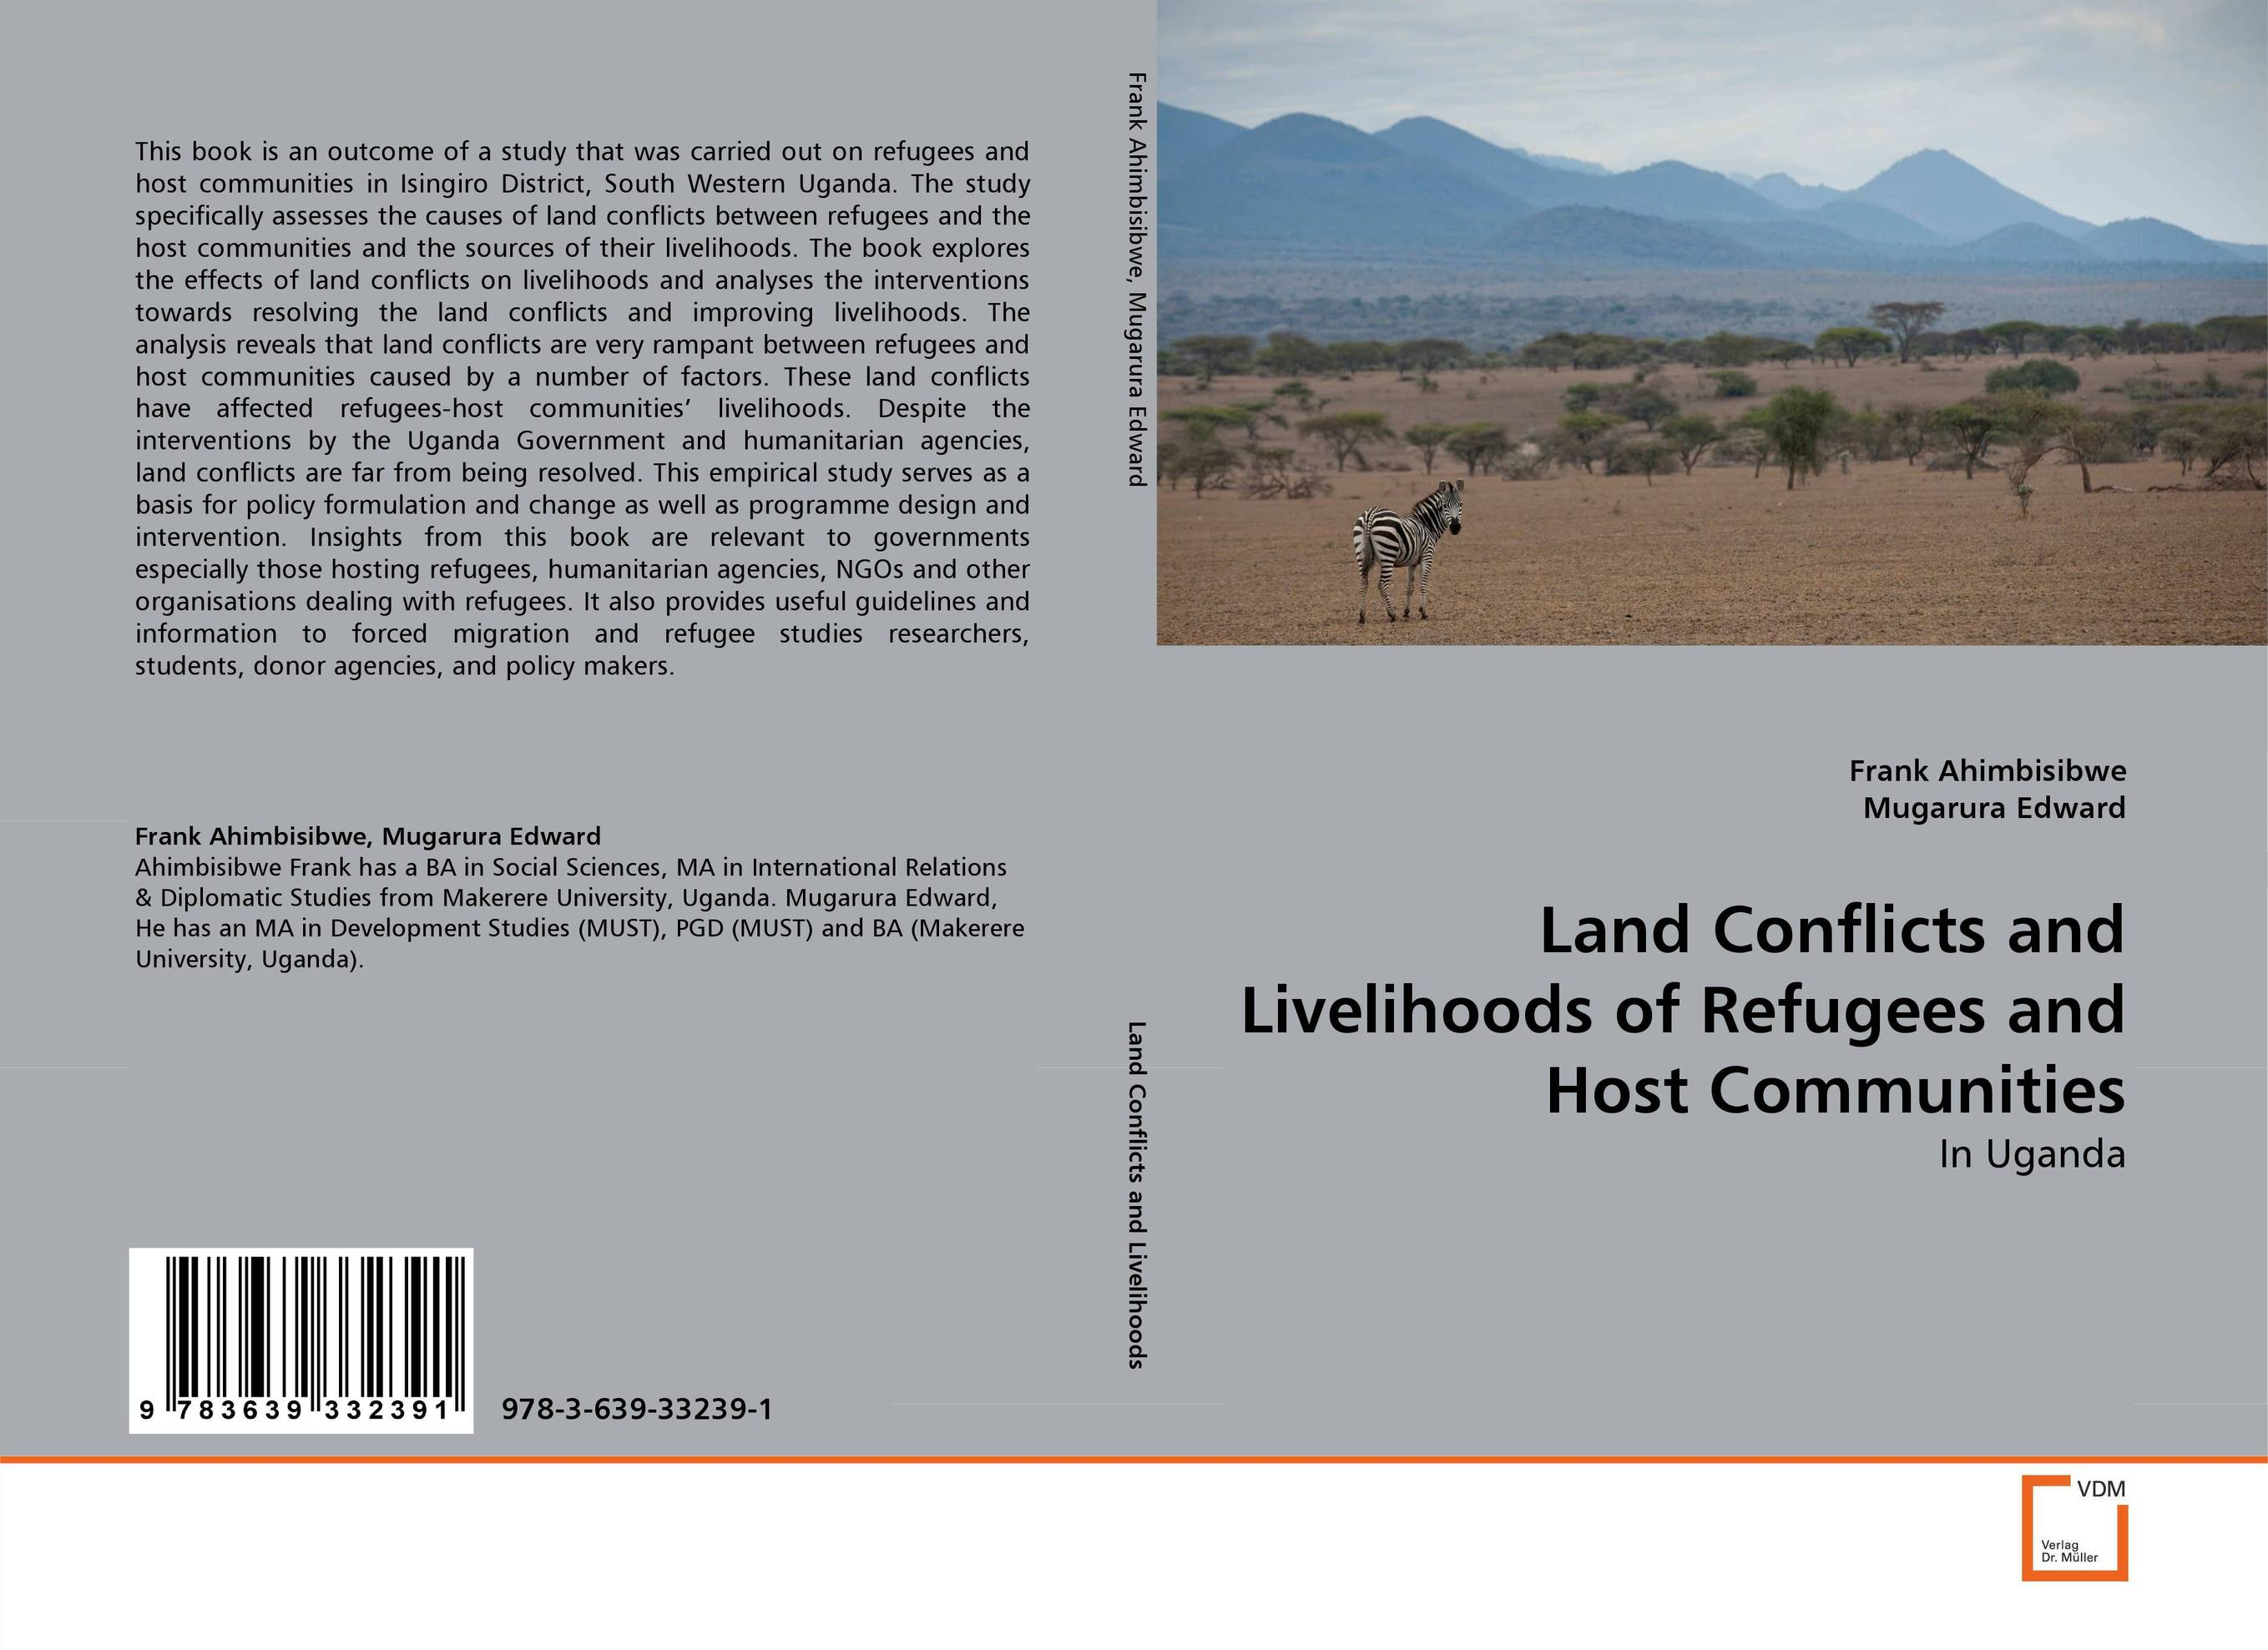 Land Conflicts and Livelihoods of Refugees and Host Communities land conflicts and livelihoods of refugees and host communities